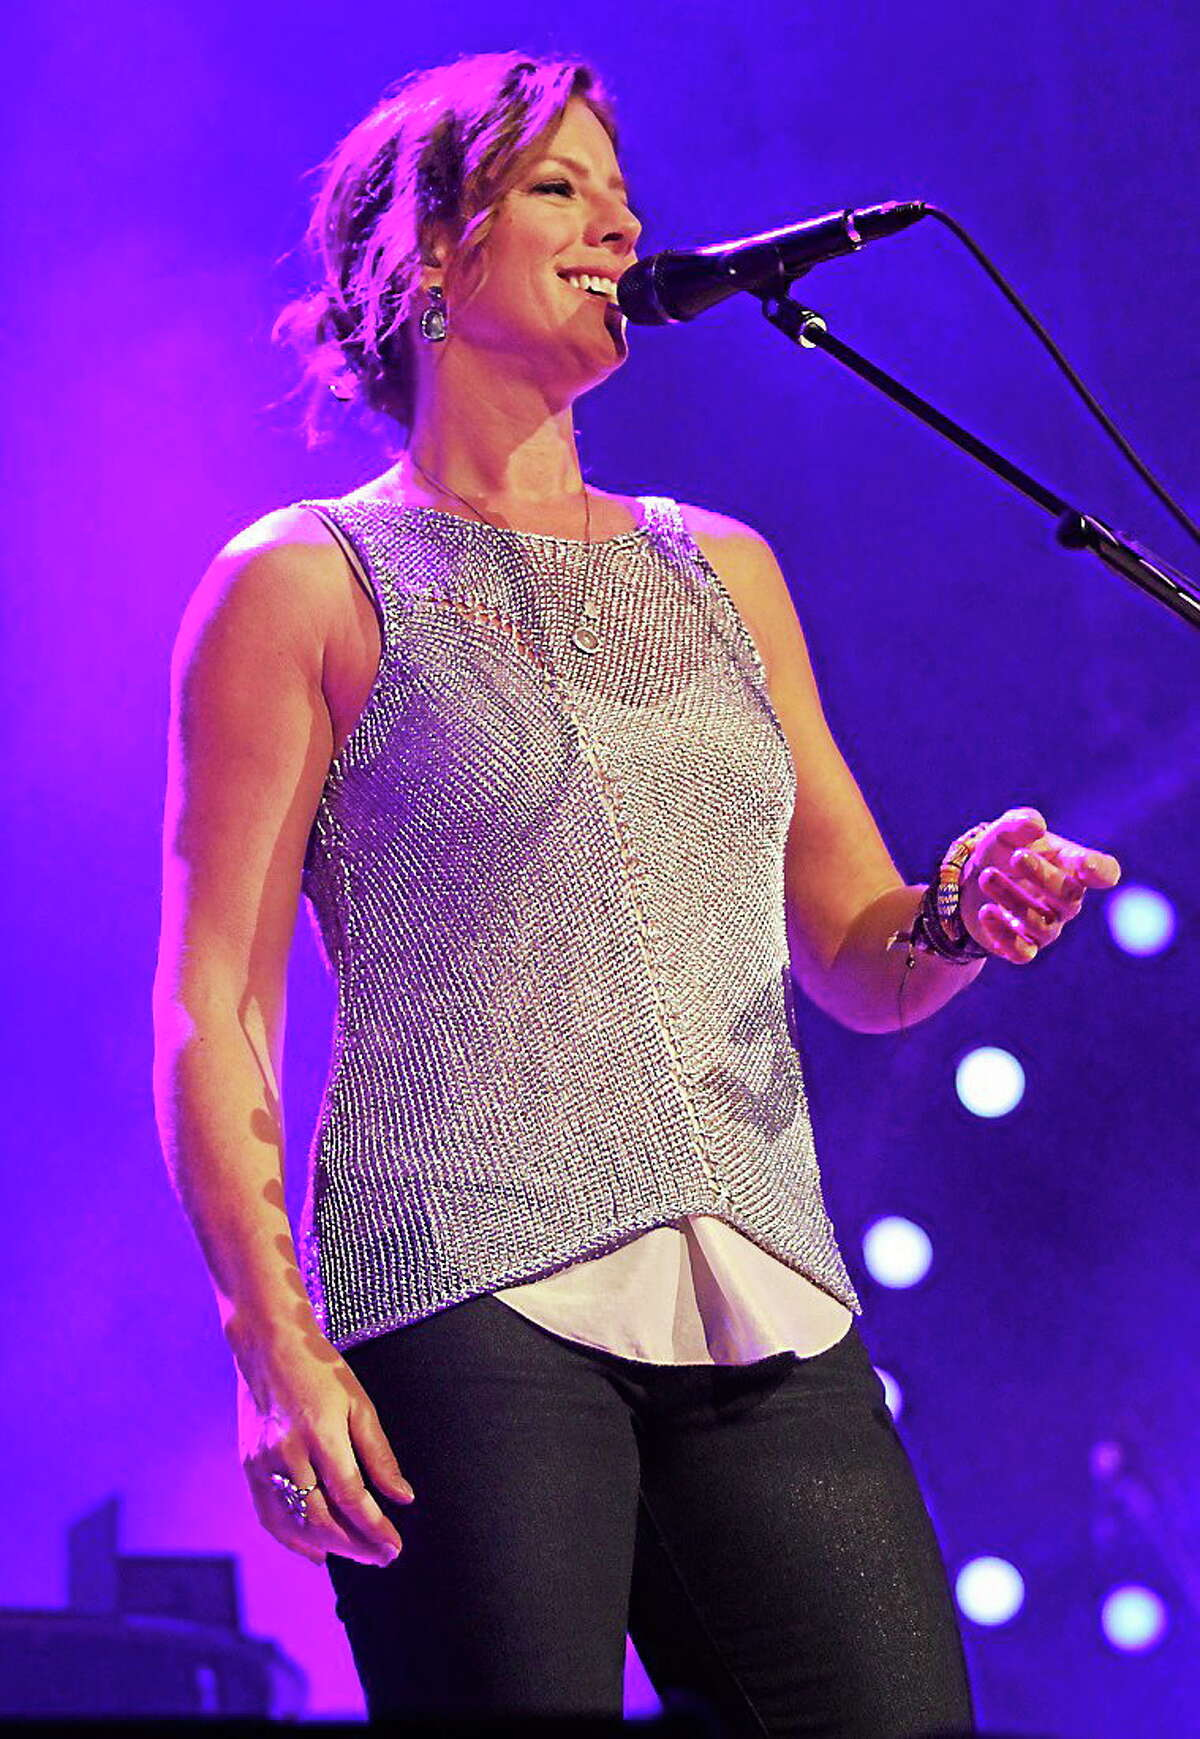 Photo by John Atashian Grammy winning singer and songwriter Sarah McLachlan is shown performing on stage during a